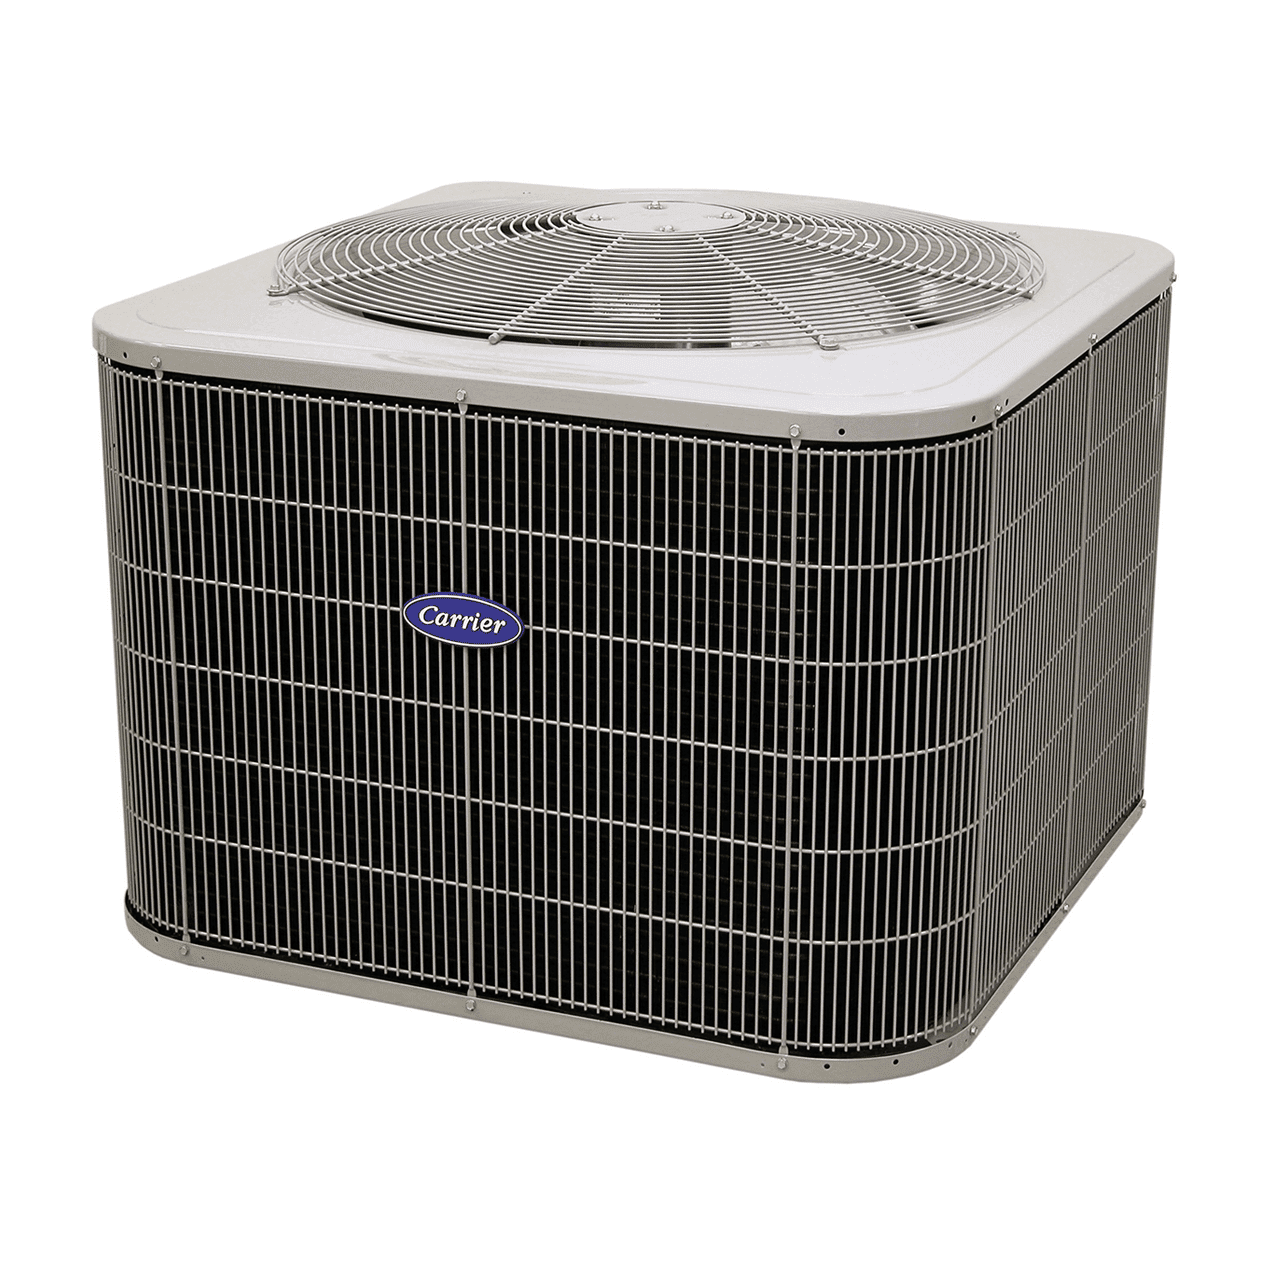 Performance™ 13 Heat Pump Model: 25HCB3